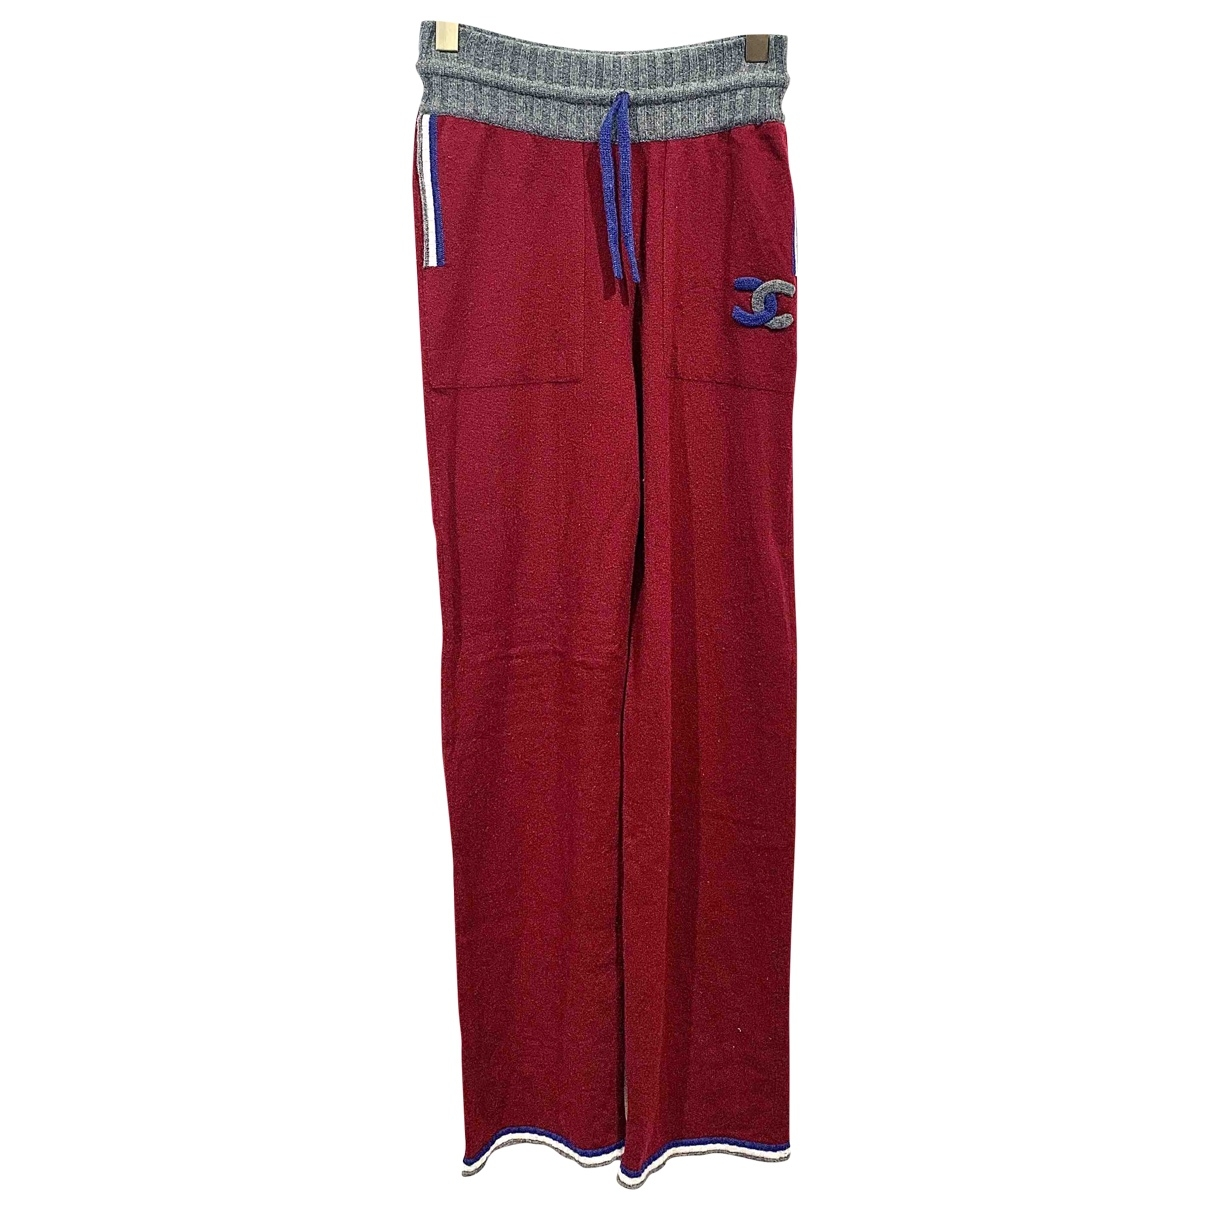 Chanel \N Burgundy Cashmere Trousers for Women 38 FR